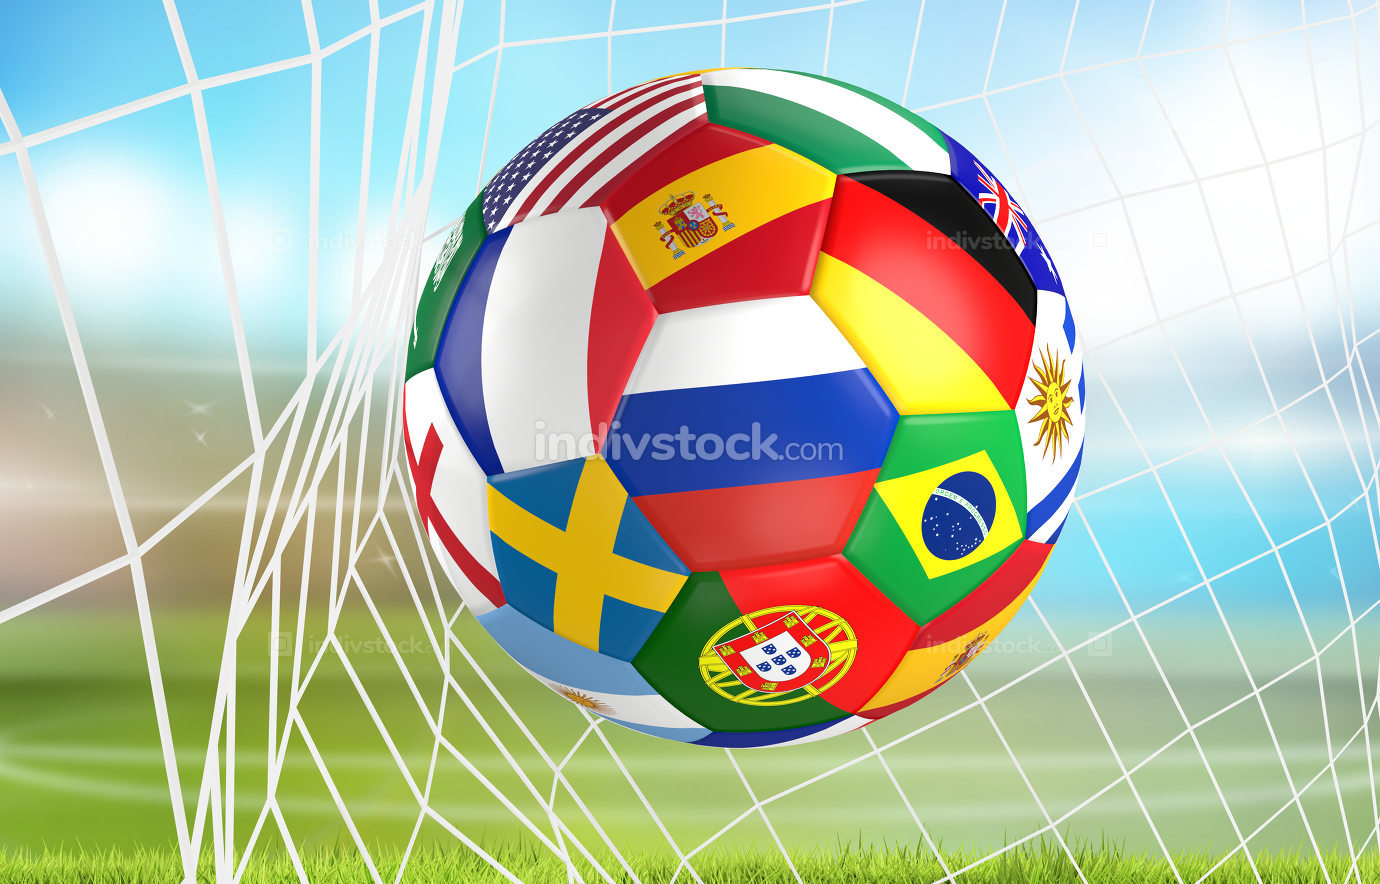 flags soccer ball in soccer net. socer goal 3d rendering